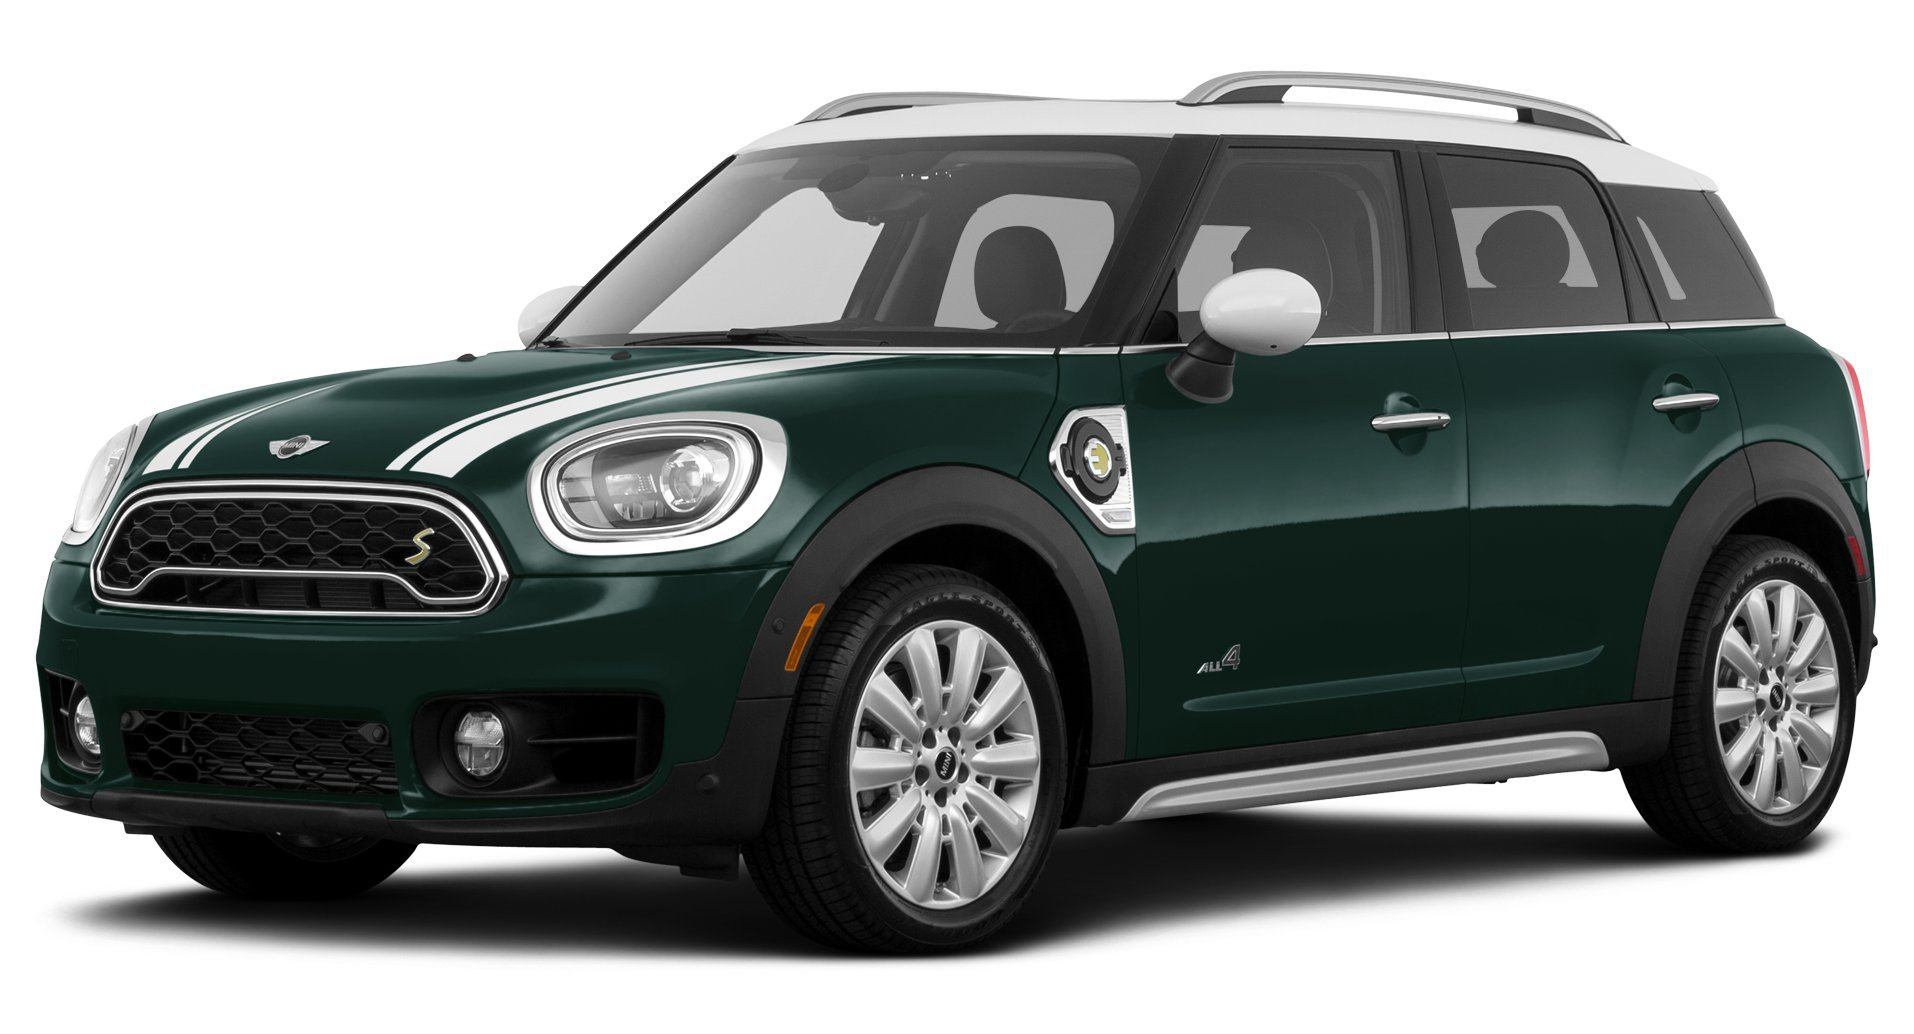 2018 mini cooper countryman reviews images and specs vehicles. Black Bedroom Furniture Sets. Home Design Ideas